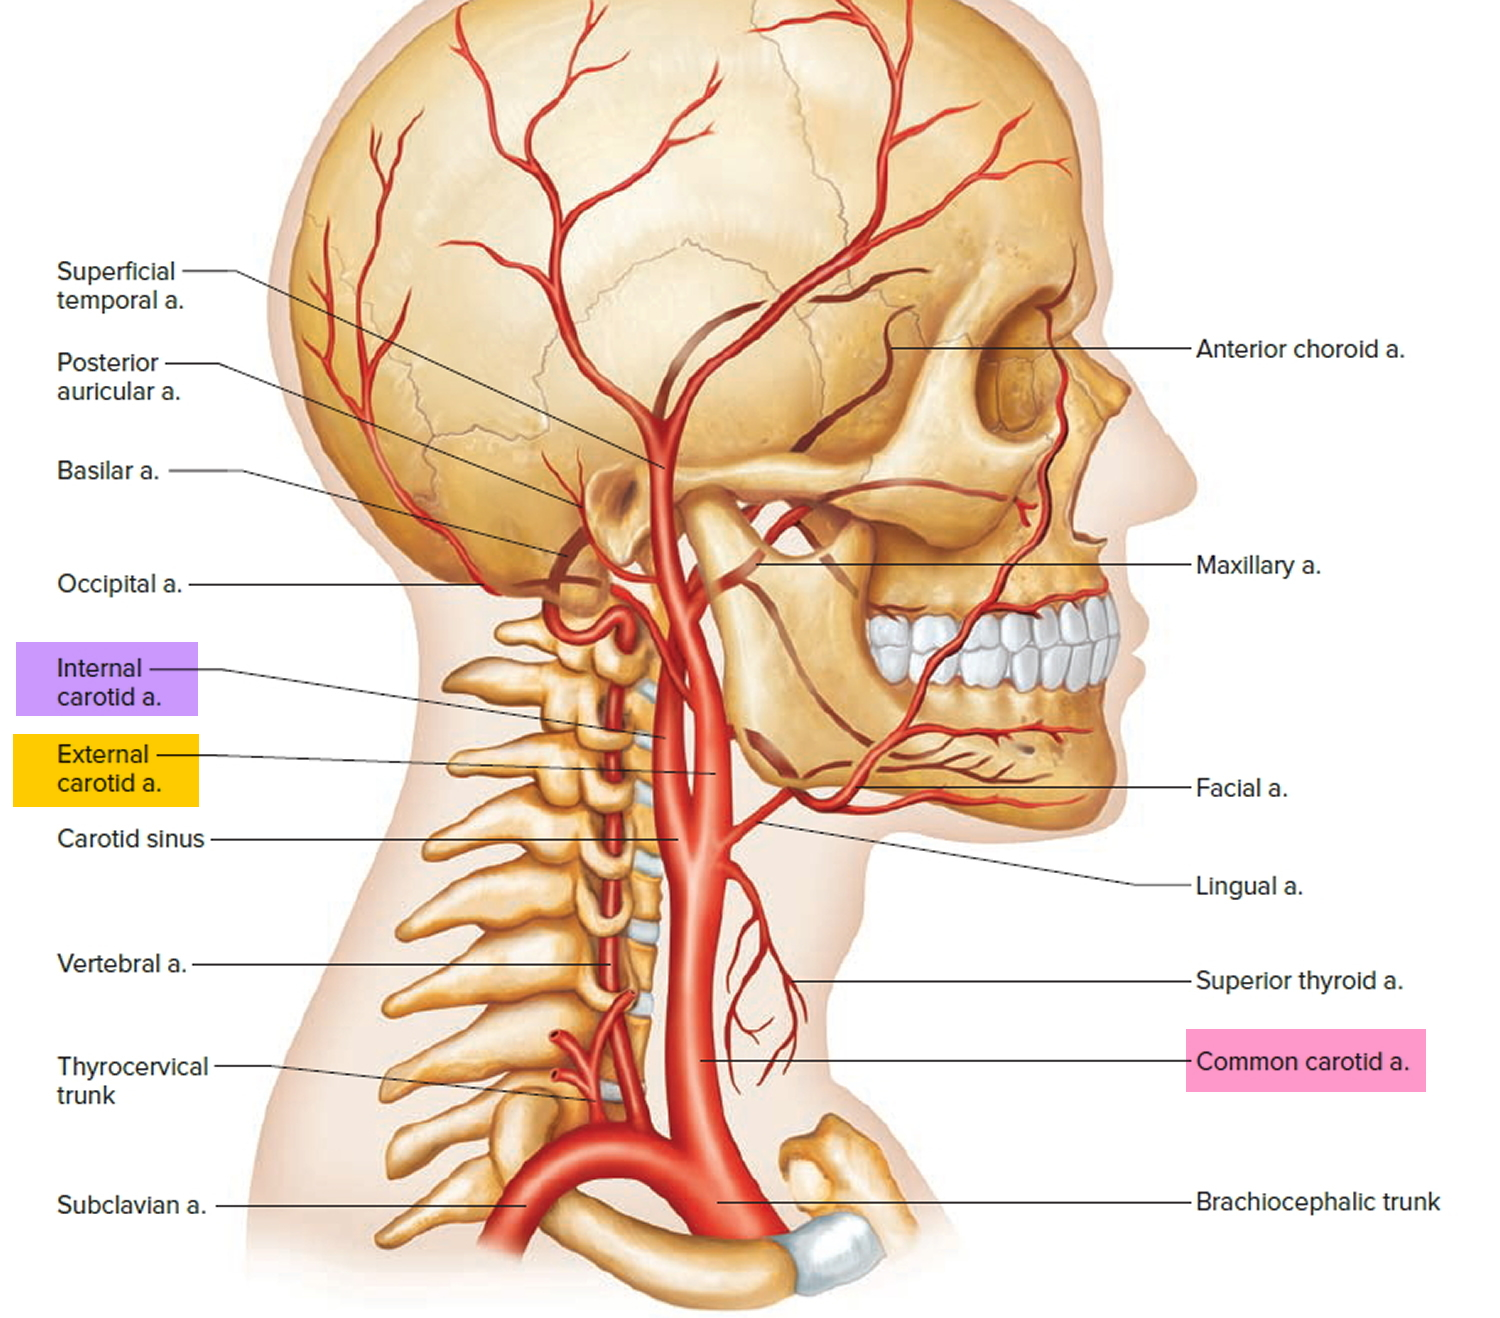 internal and external carotid artery